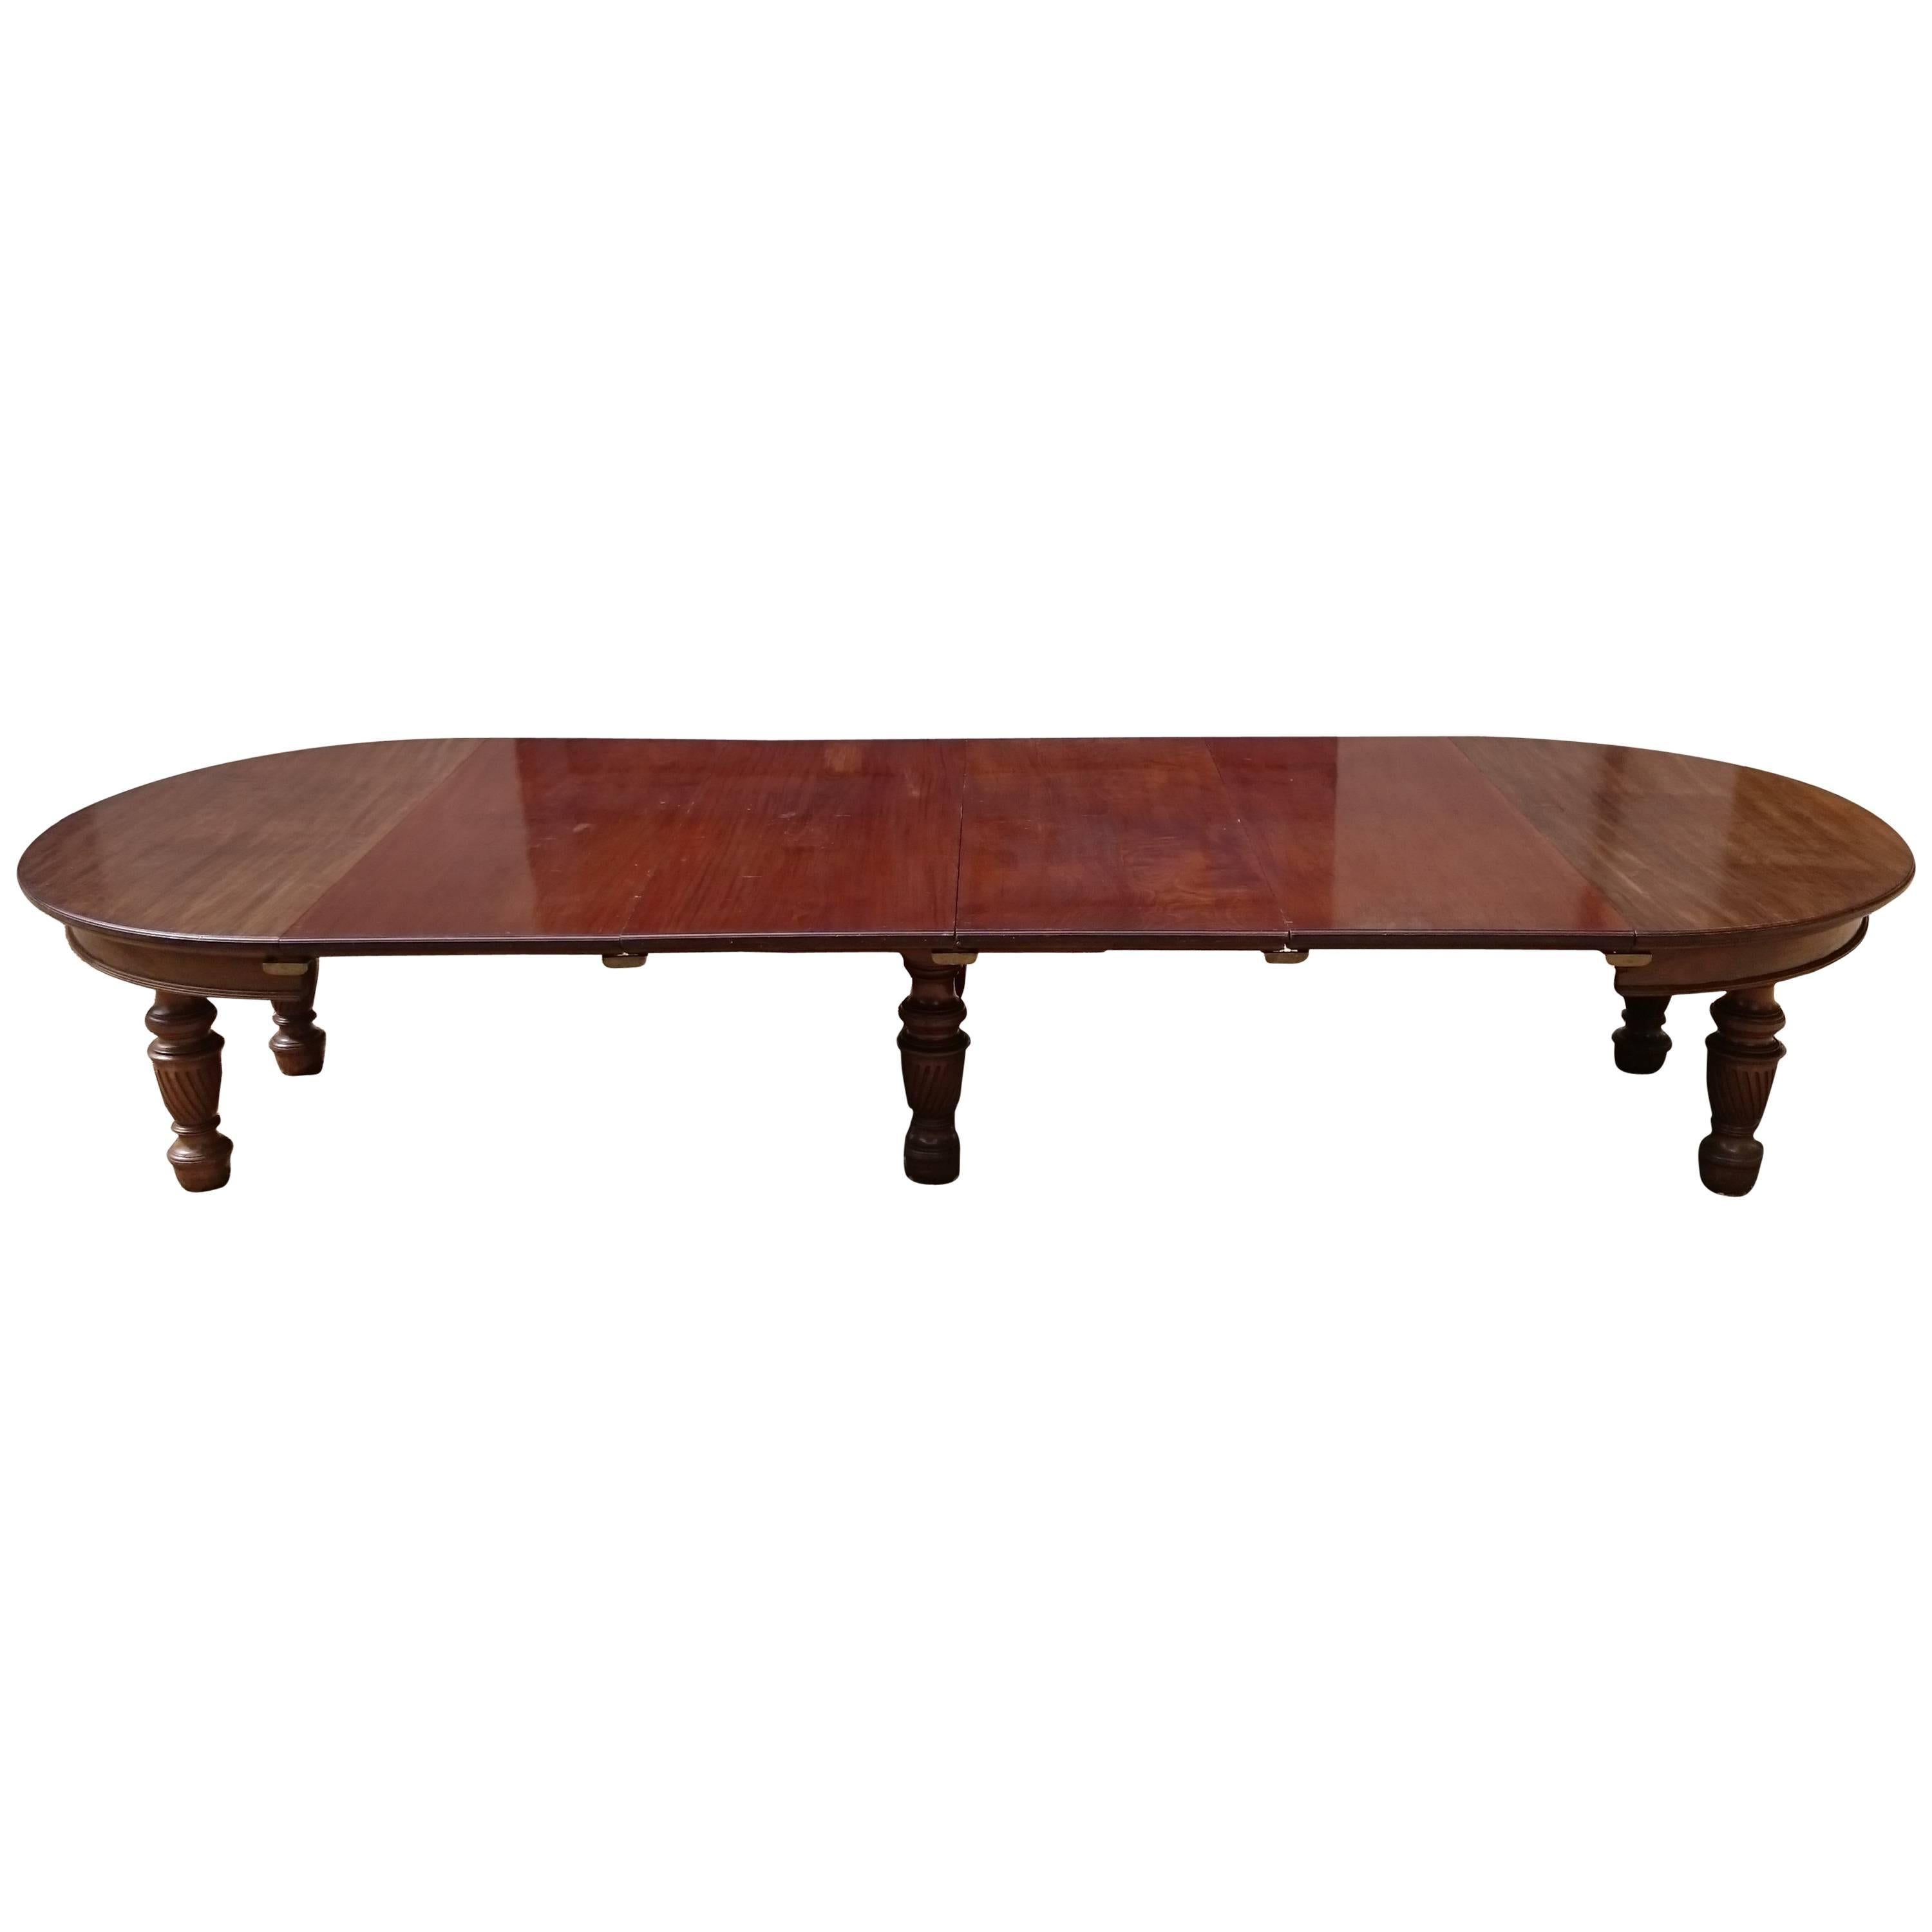 Large 19th Century Mahogany Extending Antique Dining Table